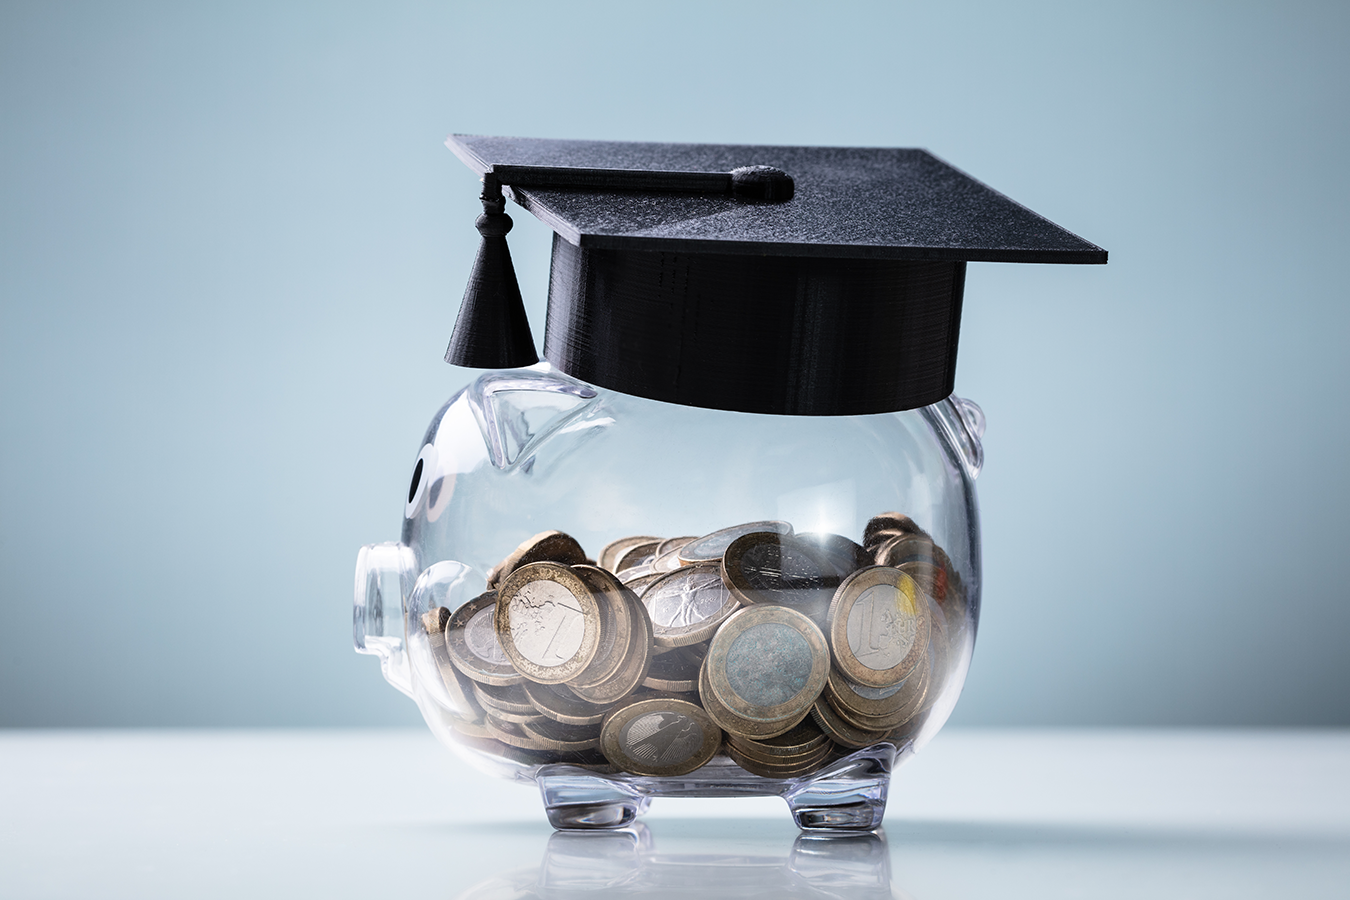 Image of Black Graduation Hat on top of a clear piggybank with coins visible inside